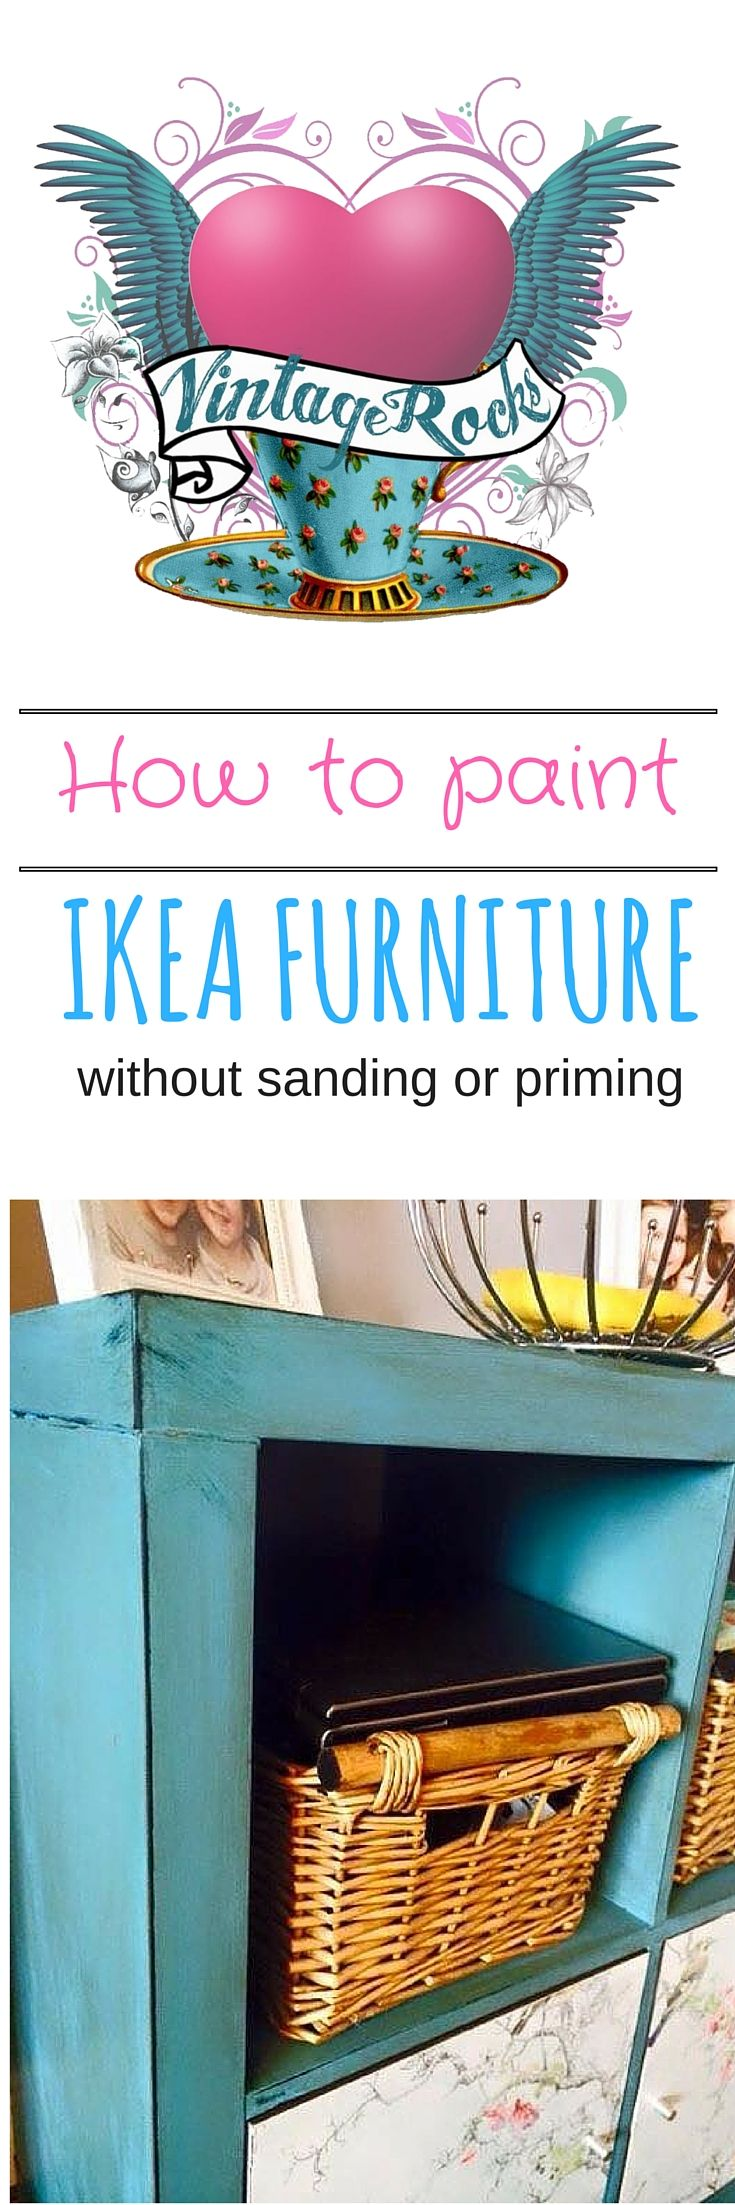 How to paint Ikea furniture with Vintage Rocks chalky paint.  So easy ... no need to sand or prime!